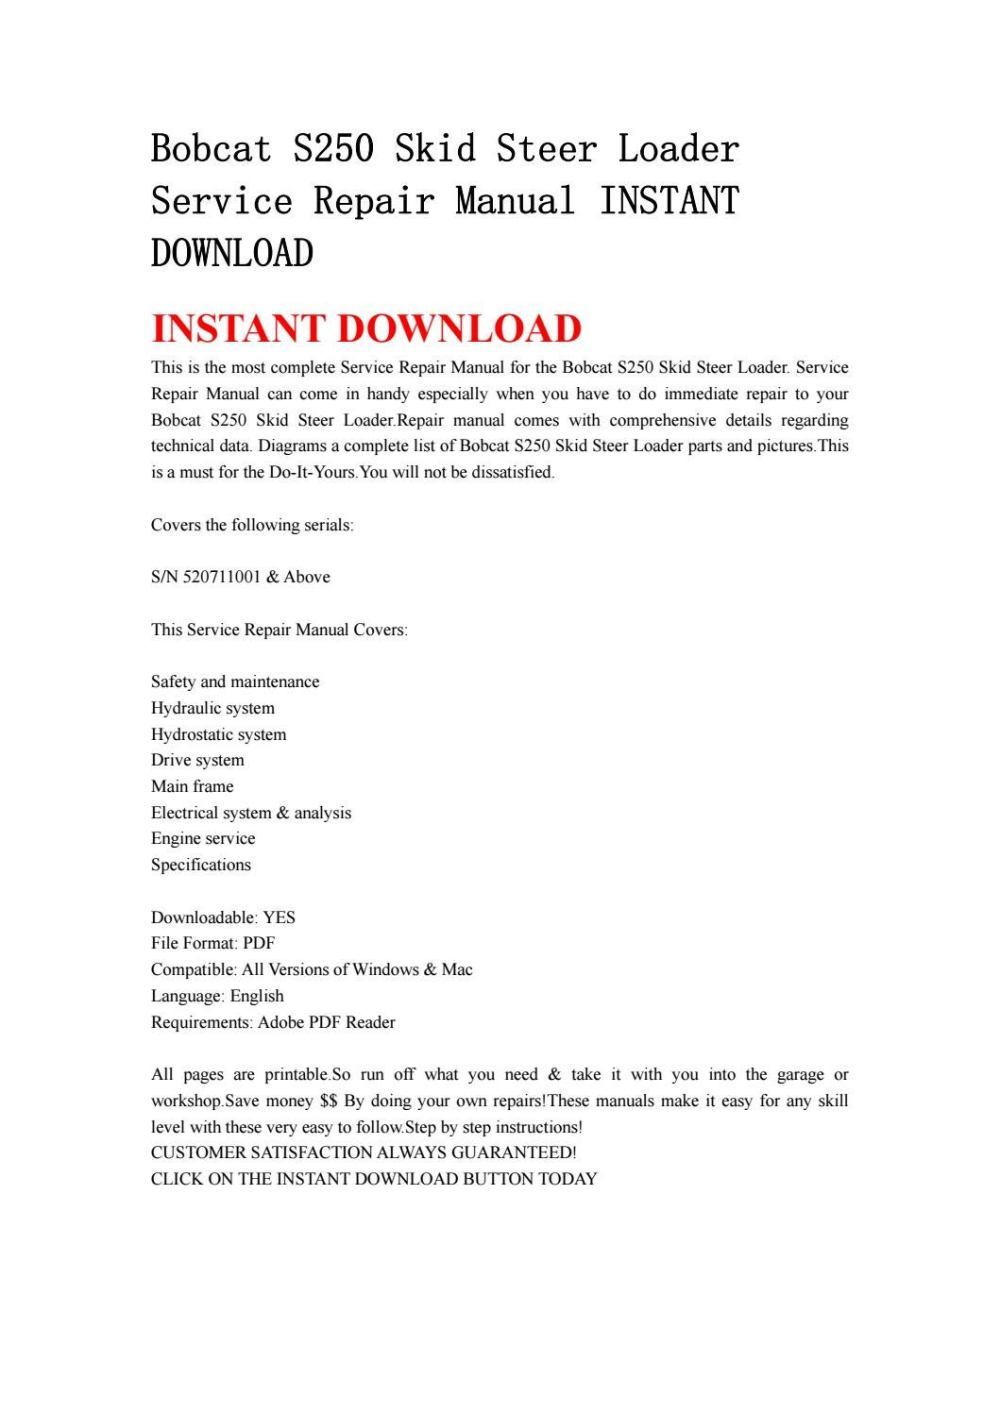 medium resolution of bobcat s250 skid steer loader service repair manual instant download by kjjshefjnsnef issuu